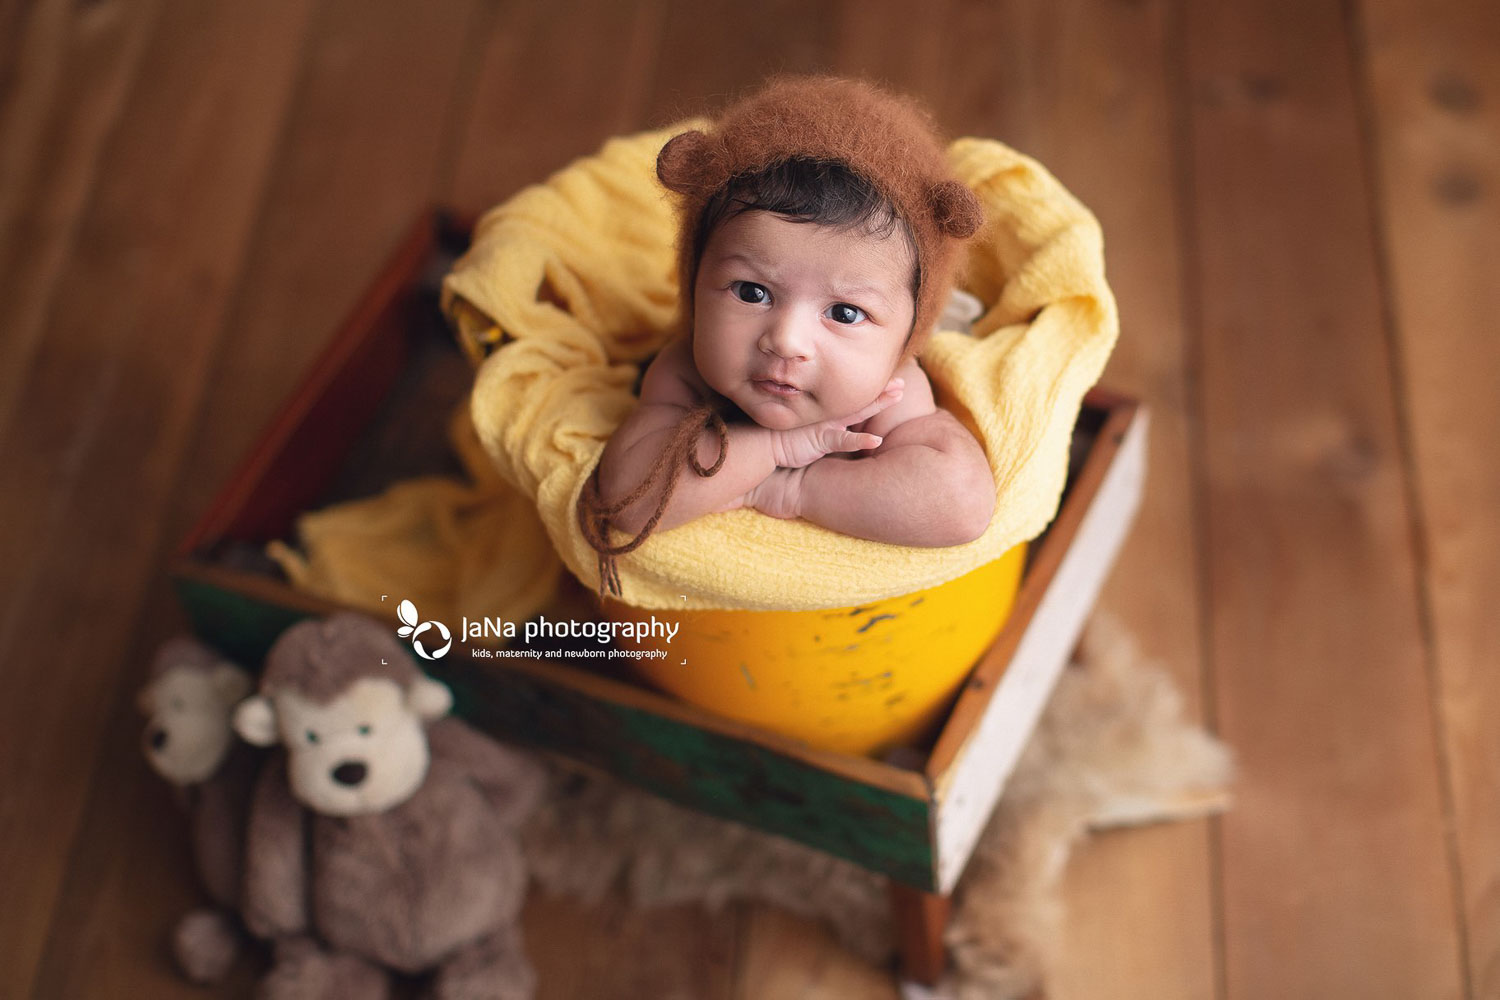 open eyes newborn baby boy in a yellow bucket - jana photography Vancouver bc